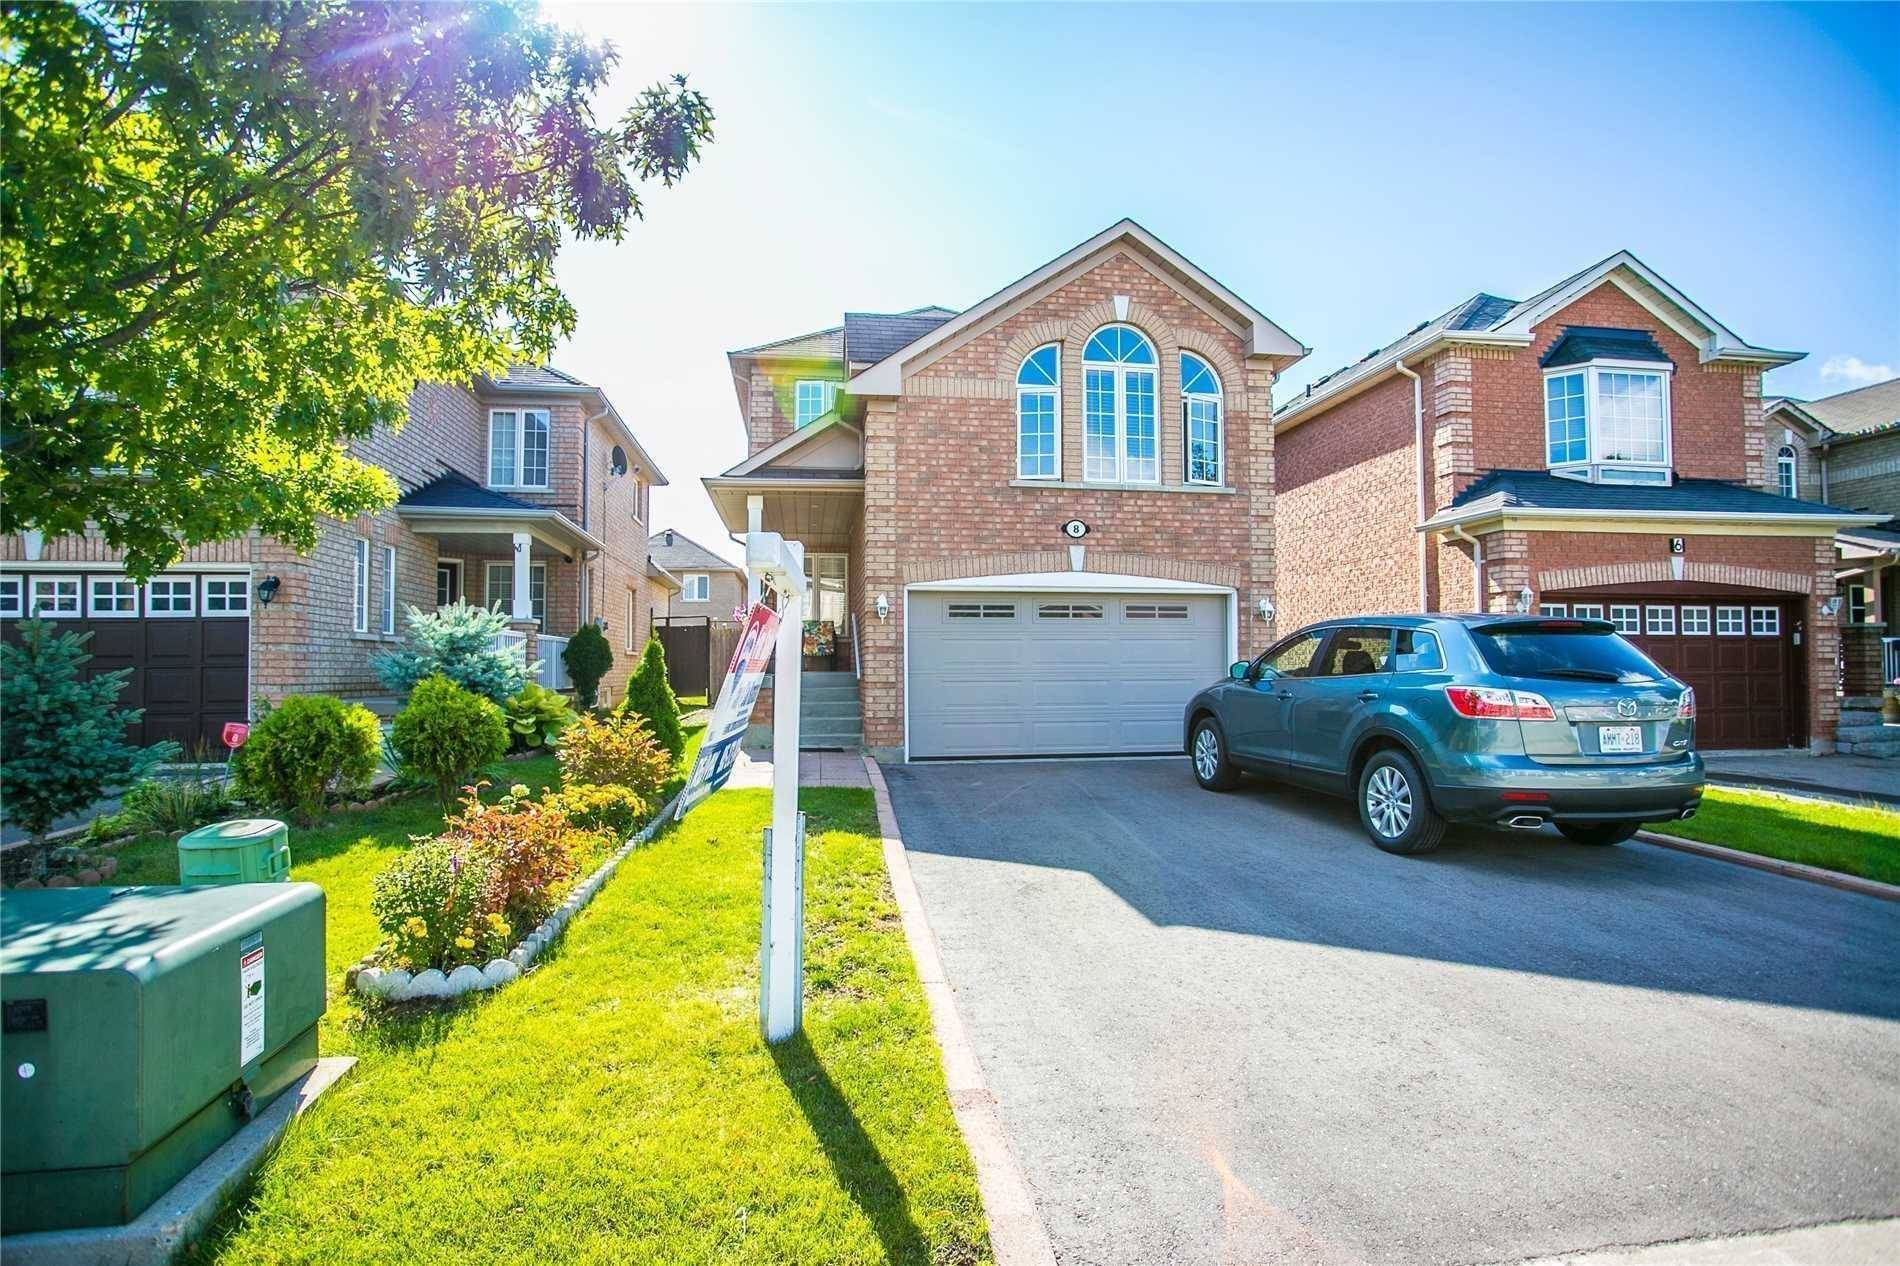 House for sale at 8 Prince Cres Brampton Ontario - MLS: W4460670